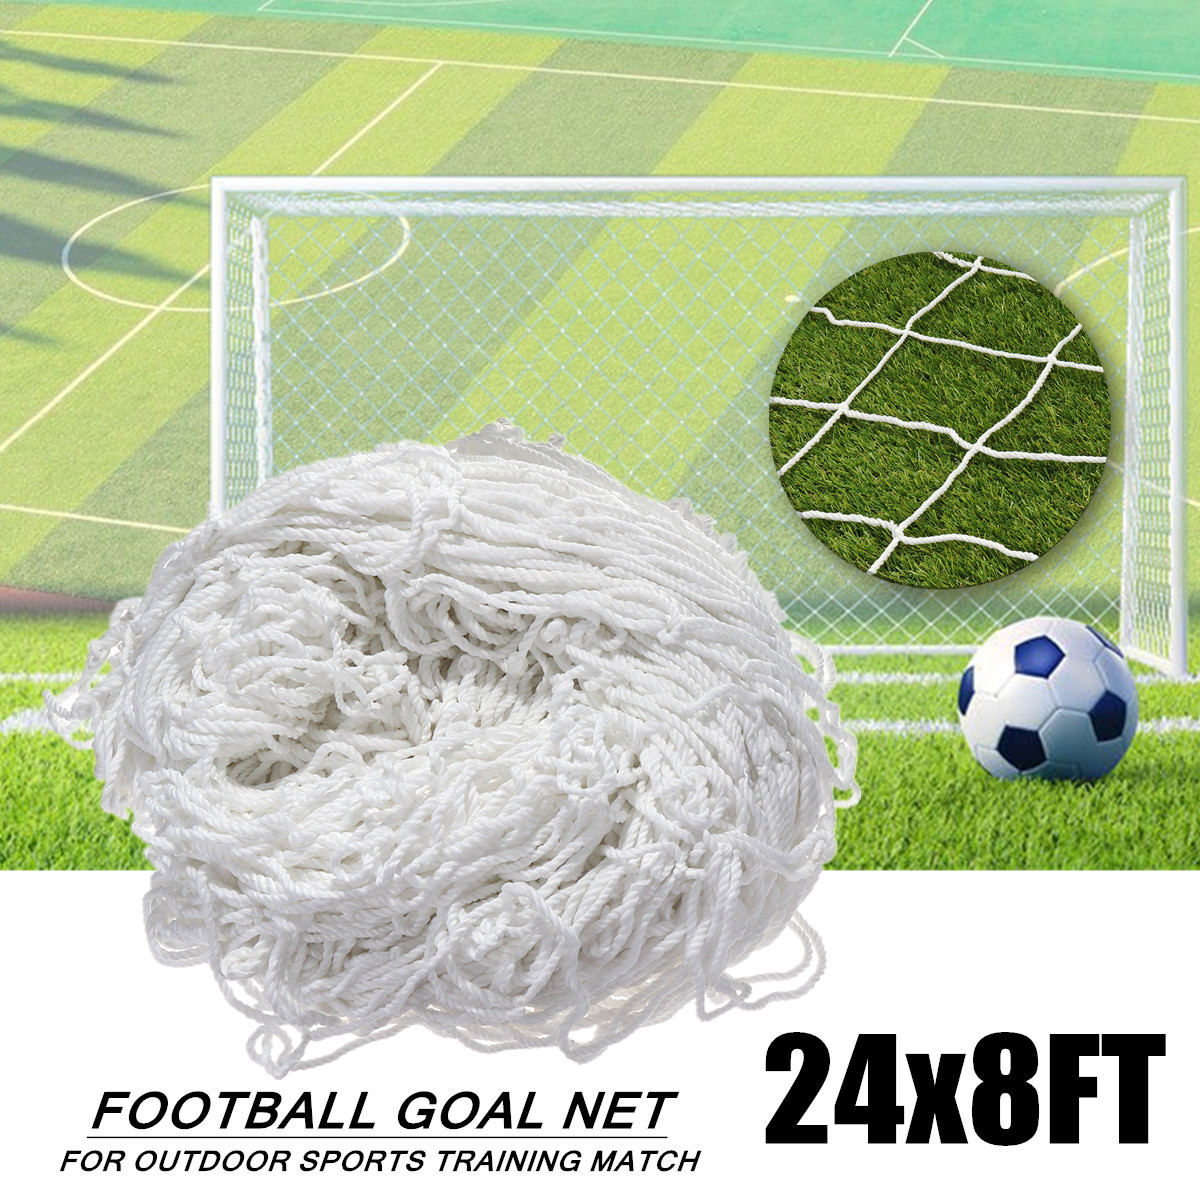 24x8ft Full Size Soccer Football Goal Post Net For Outdoor Sports Training Match Flexible Double Knotted Polypropylene Material24x8ft Full Size Soccer Football Goal Post Net For Outdoor Sports Training Match Flexible Double Knotted Polypropylene Material